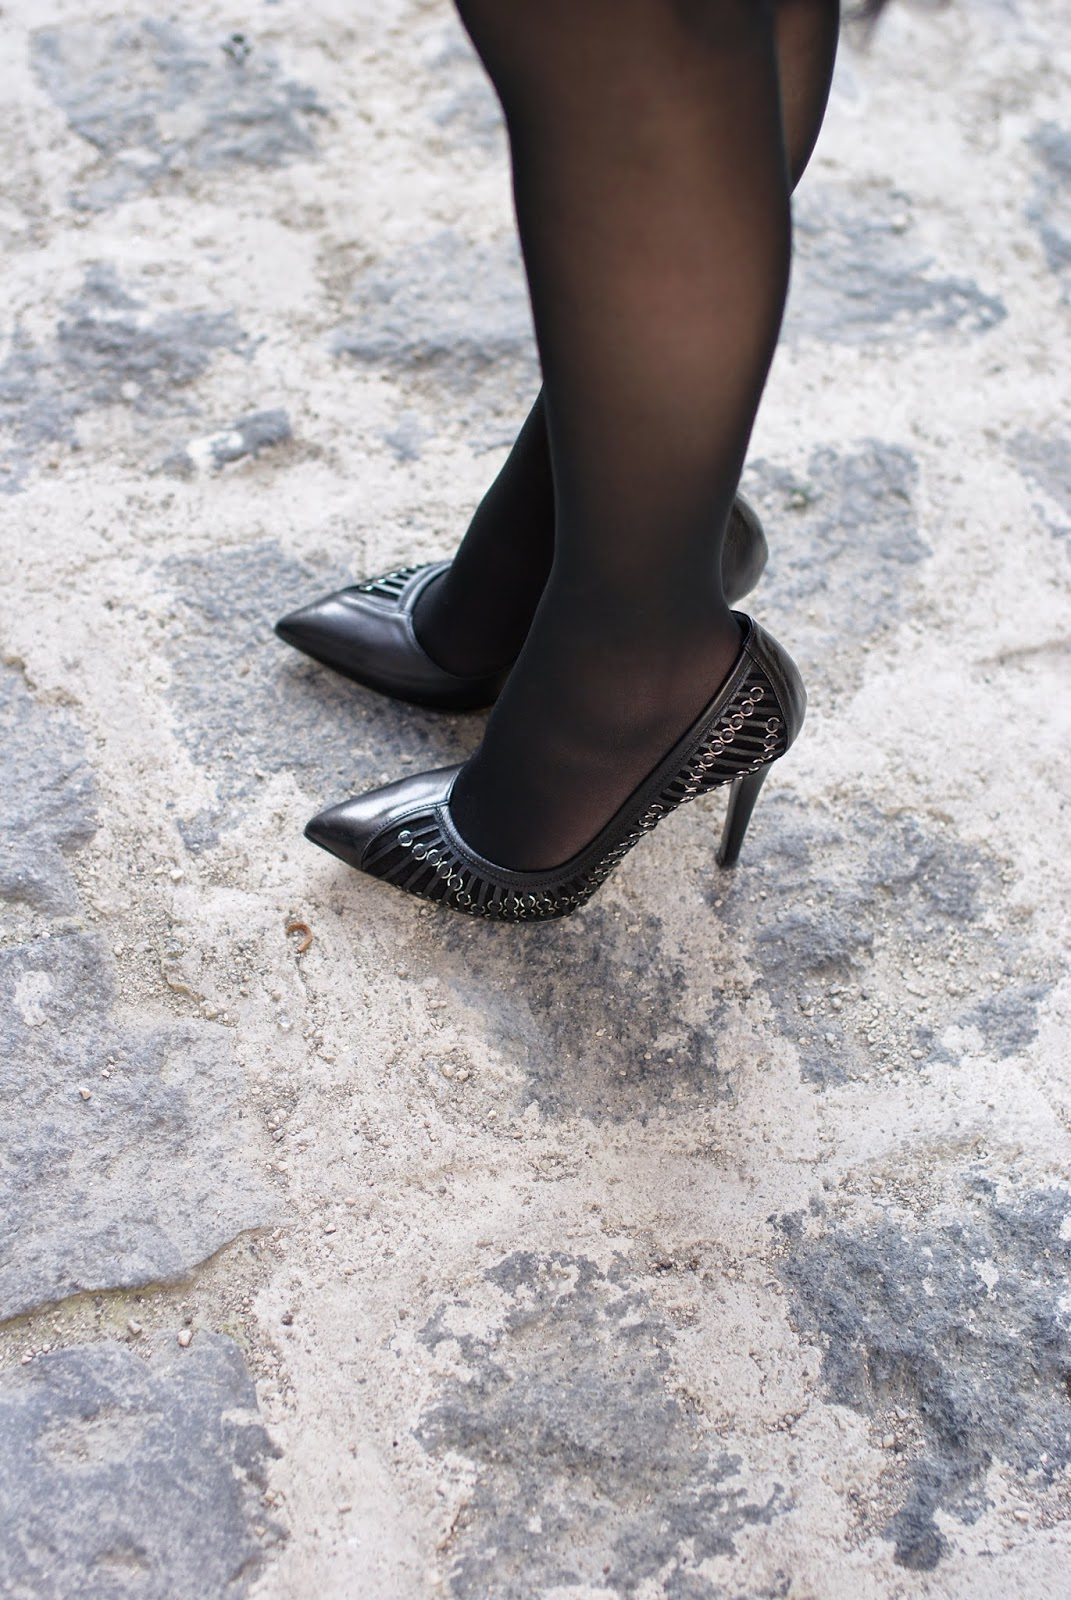 Loriblu pumps, black tights, Fashion and Cookies, fashion blogger